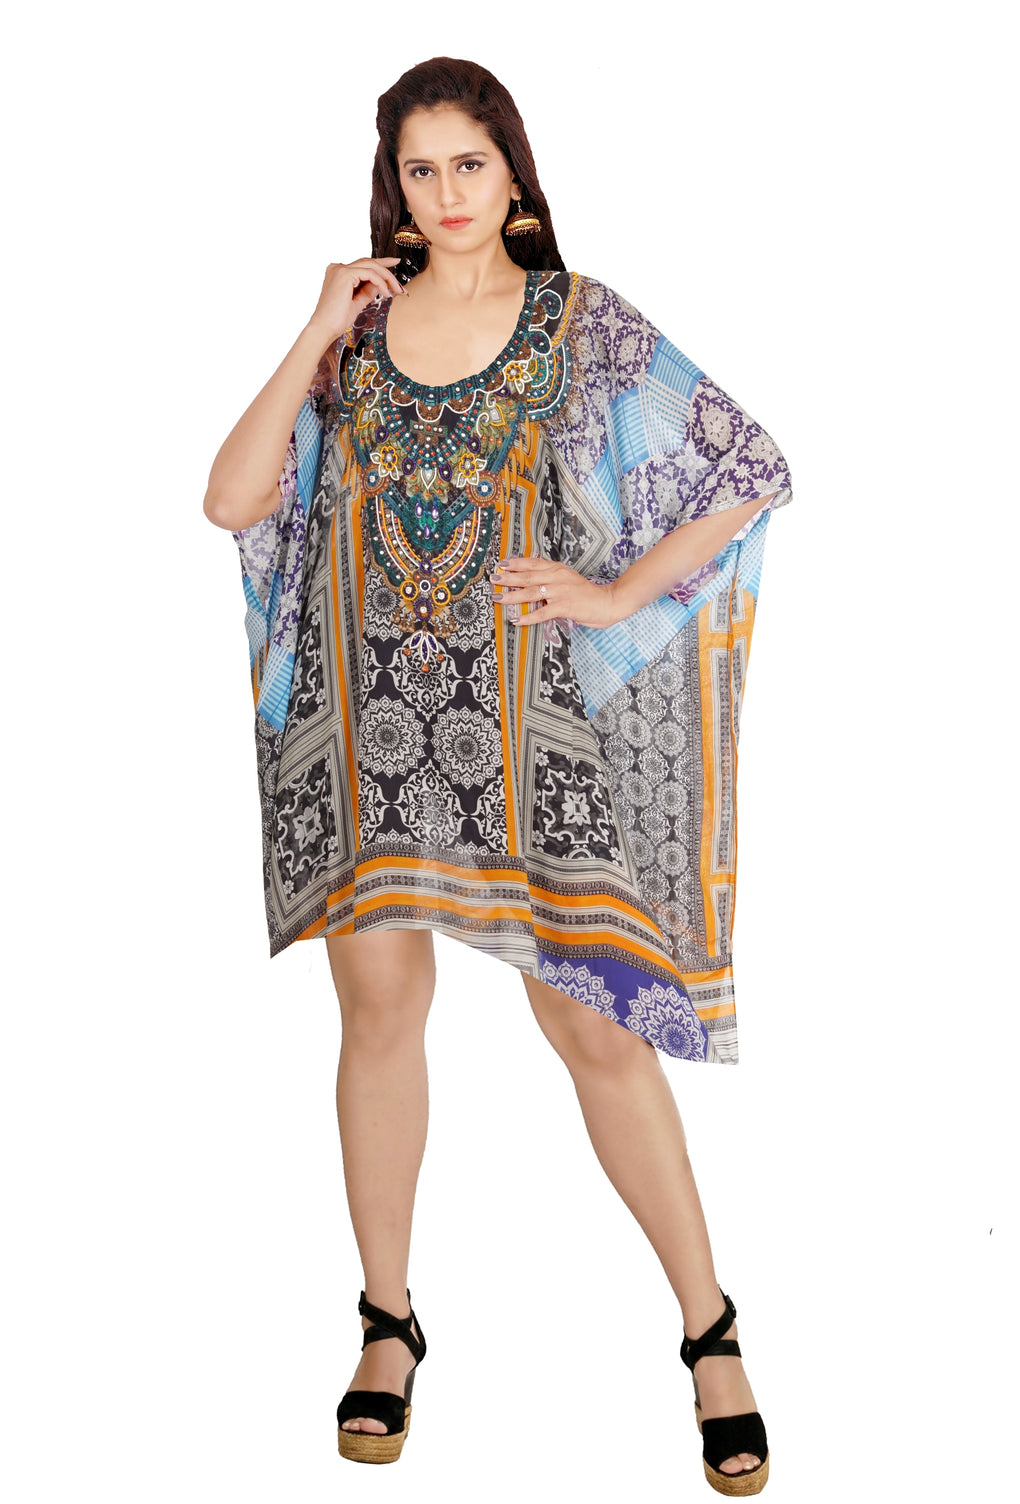 Resort wear for women Silk caftan tunic for women luxury resort wear Caftan Dress Elegant kaftan - Silk kaftan